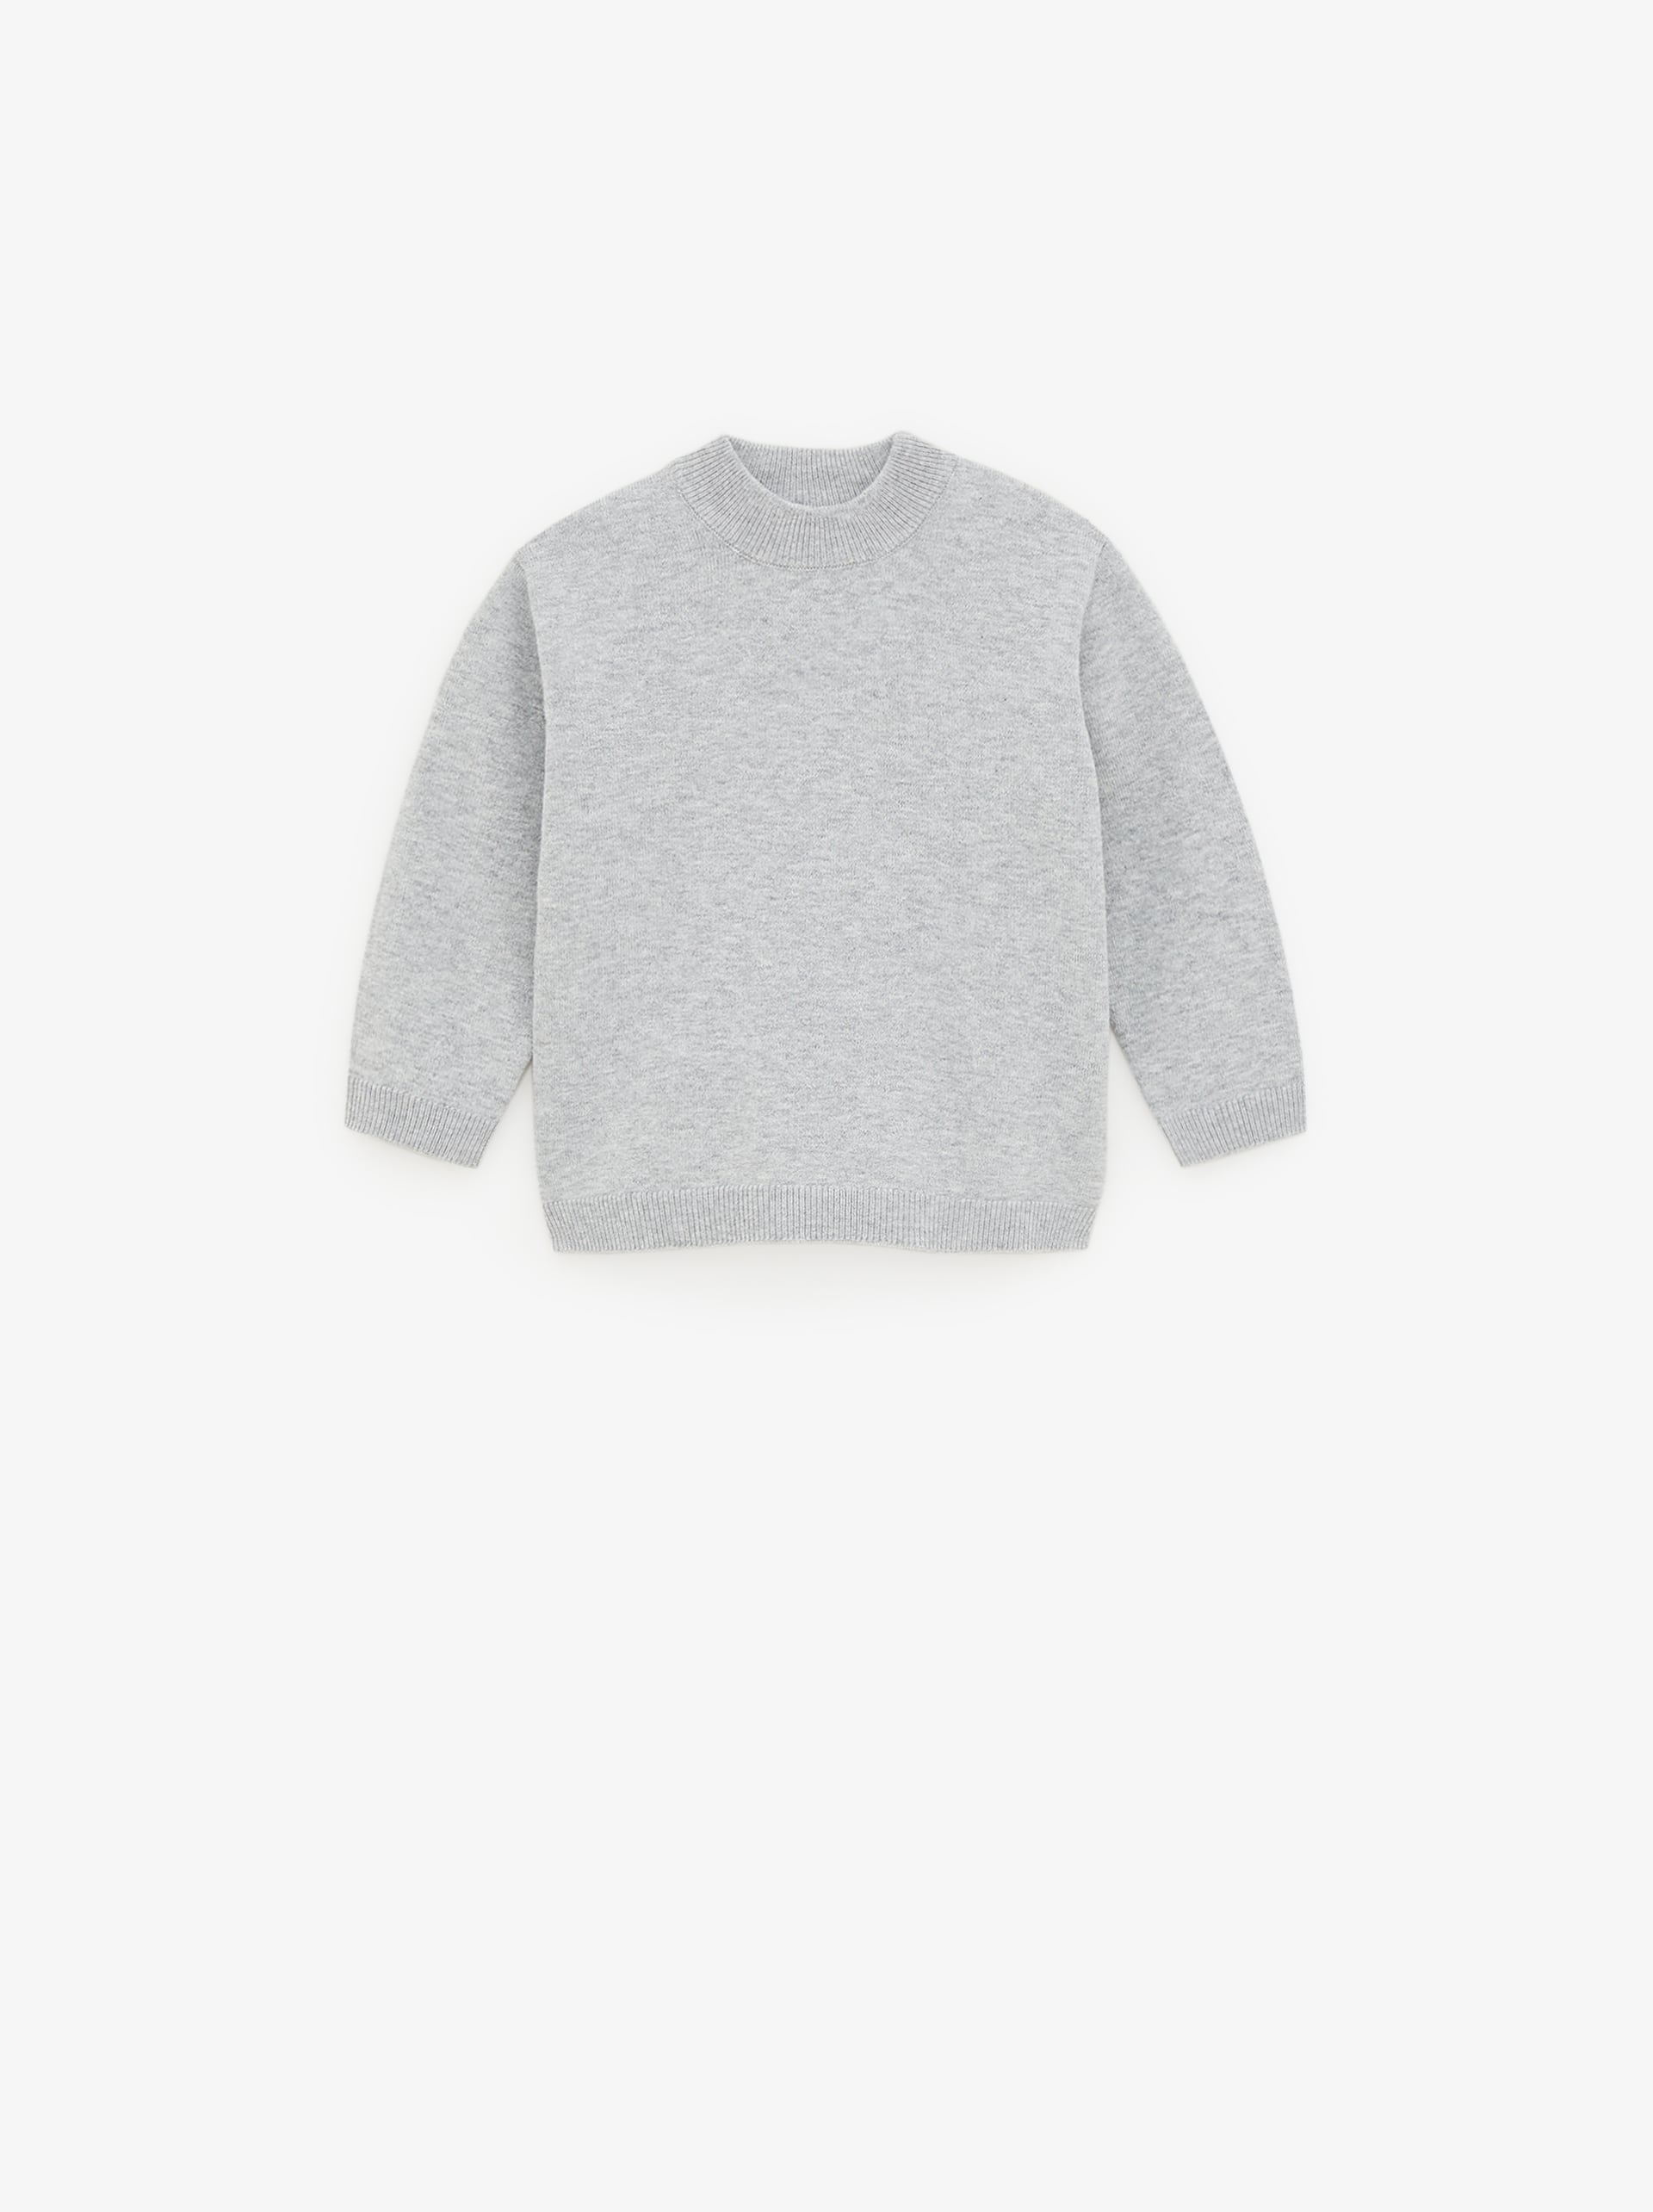 Basic Mock Neck Sweater by Zara